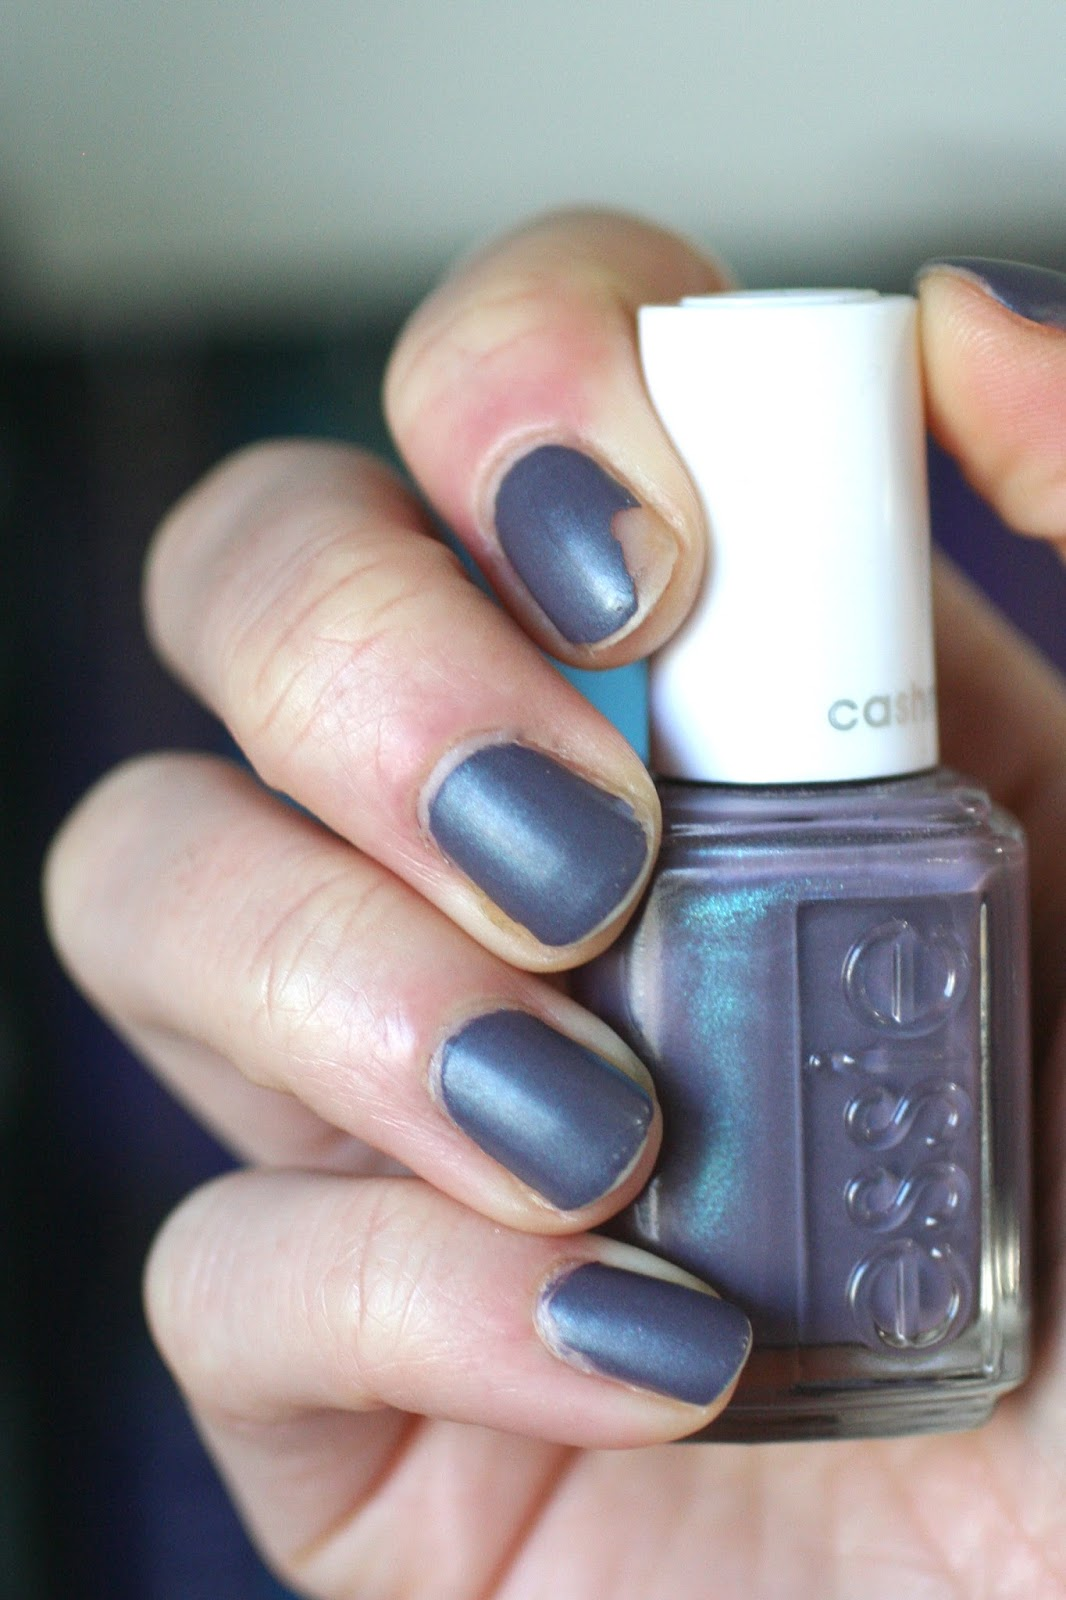 Essie Coat Couture (Cashmere Matte) : Review, Wear Test & Making It ...